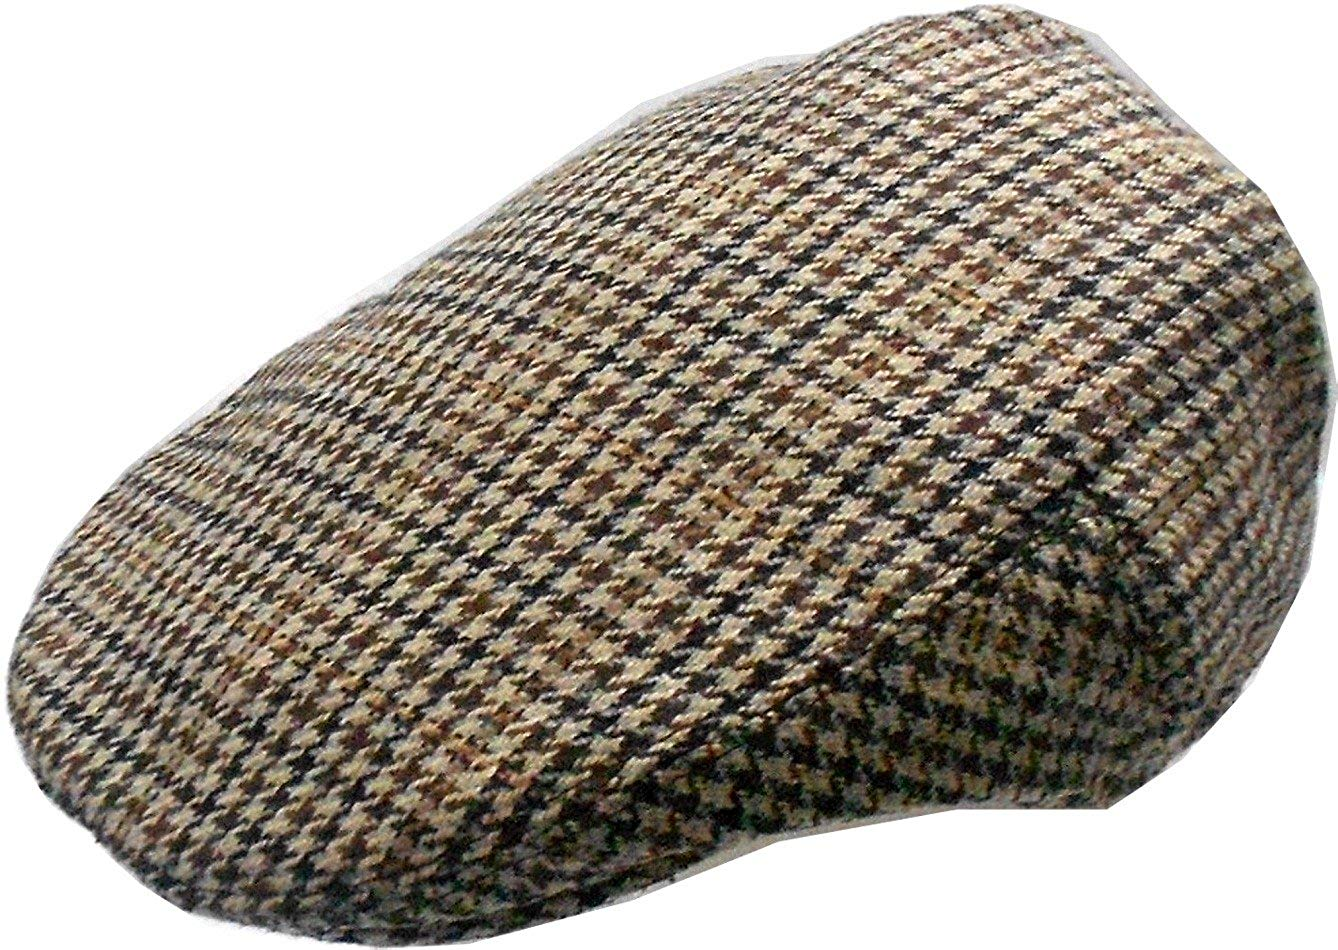 76b9deed37f28 Get Quotations · Mens Wool Blend Houndstooth Ivy Golf Driver Hat Irish  Hunting Gatsby Flat Cap